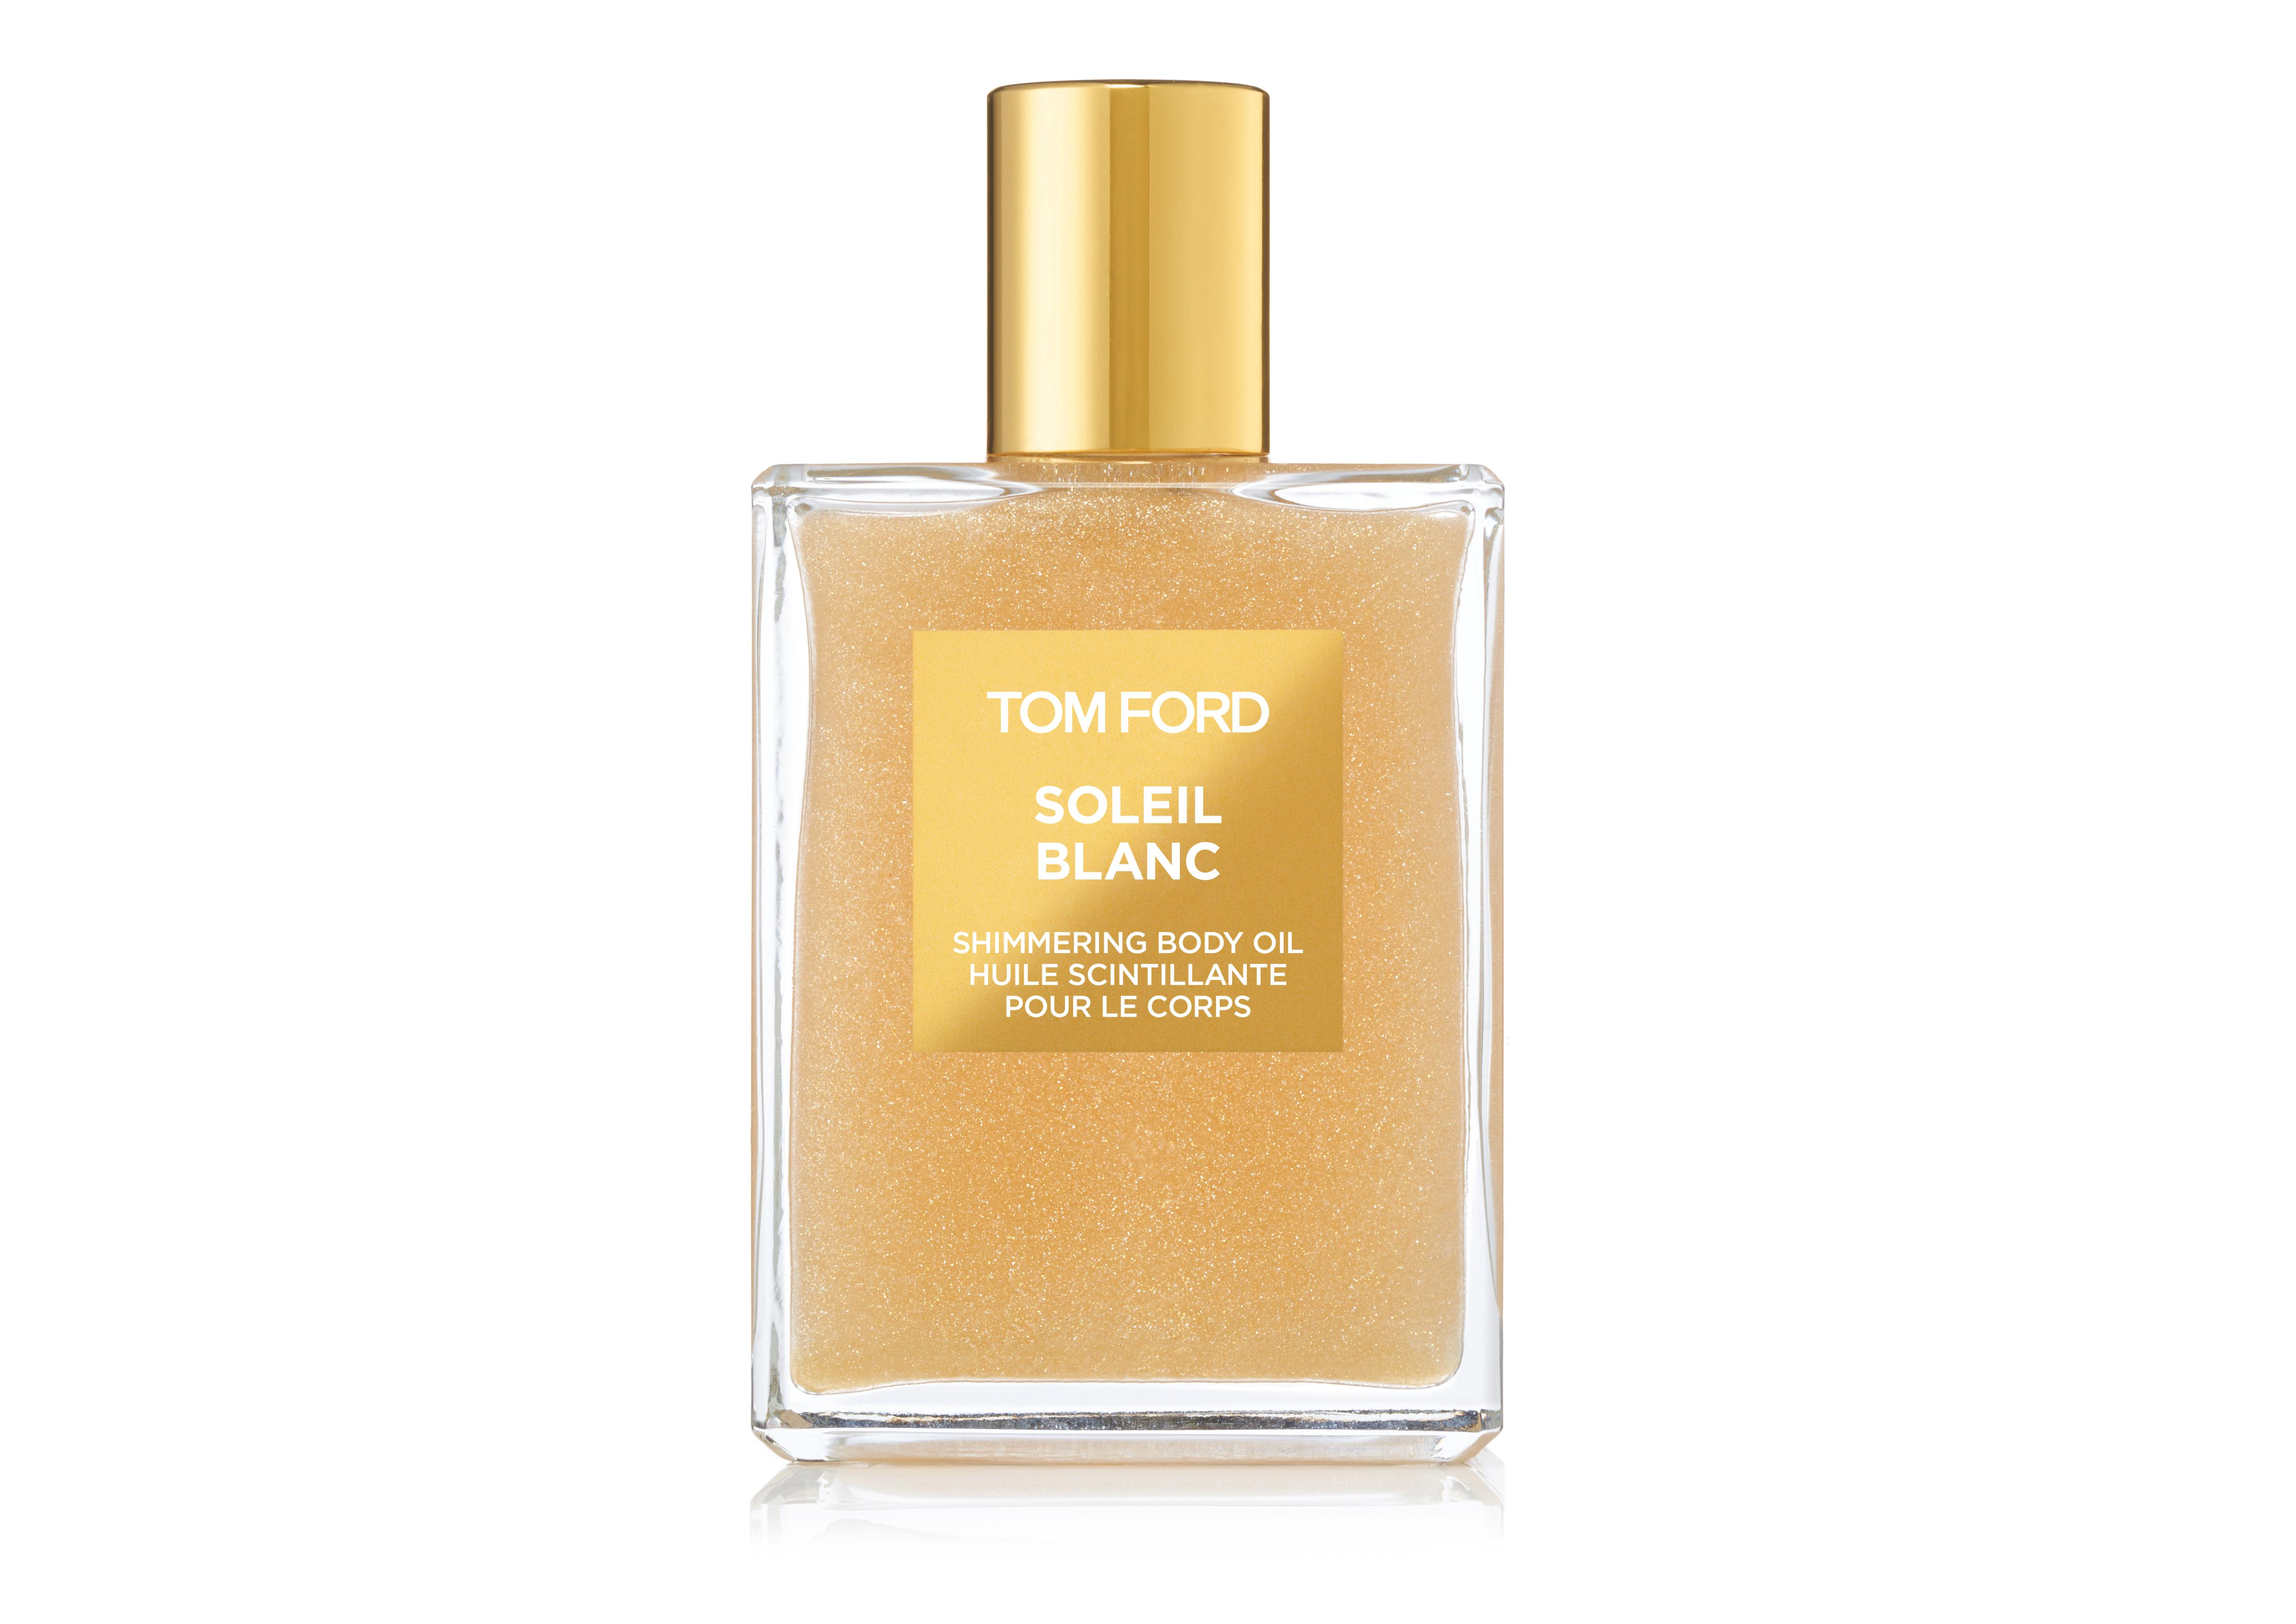 SOLEIL BLANC SHIMMERING BODY OIL A thumbnail